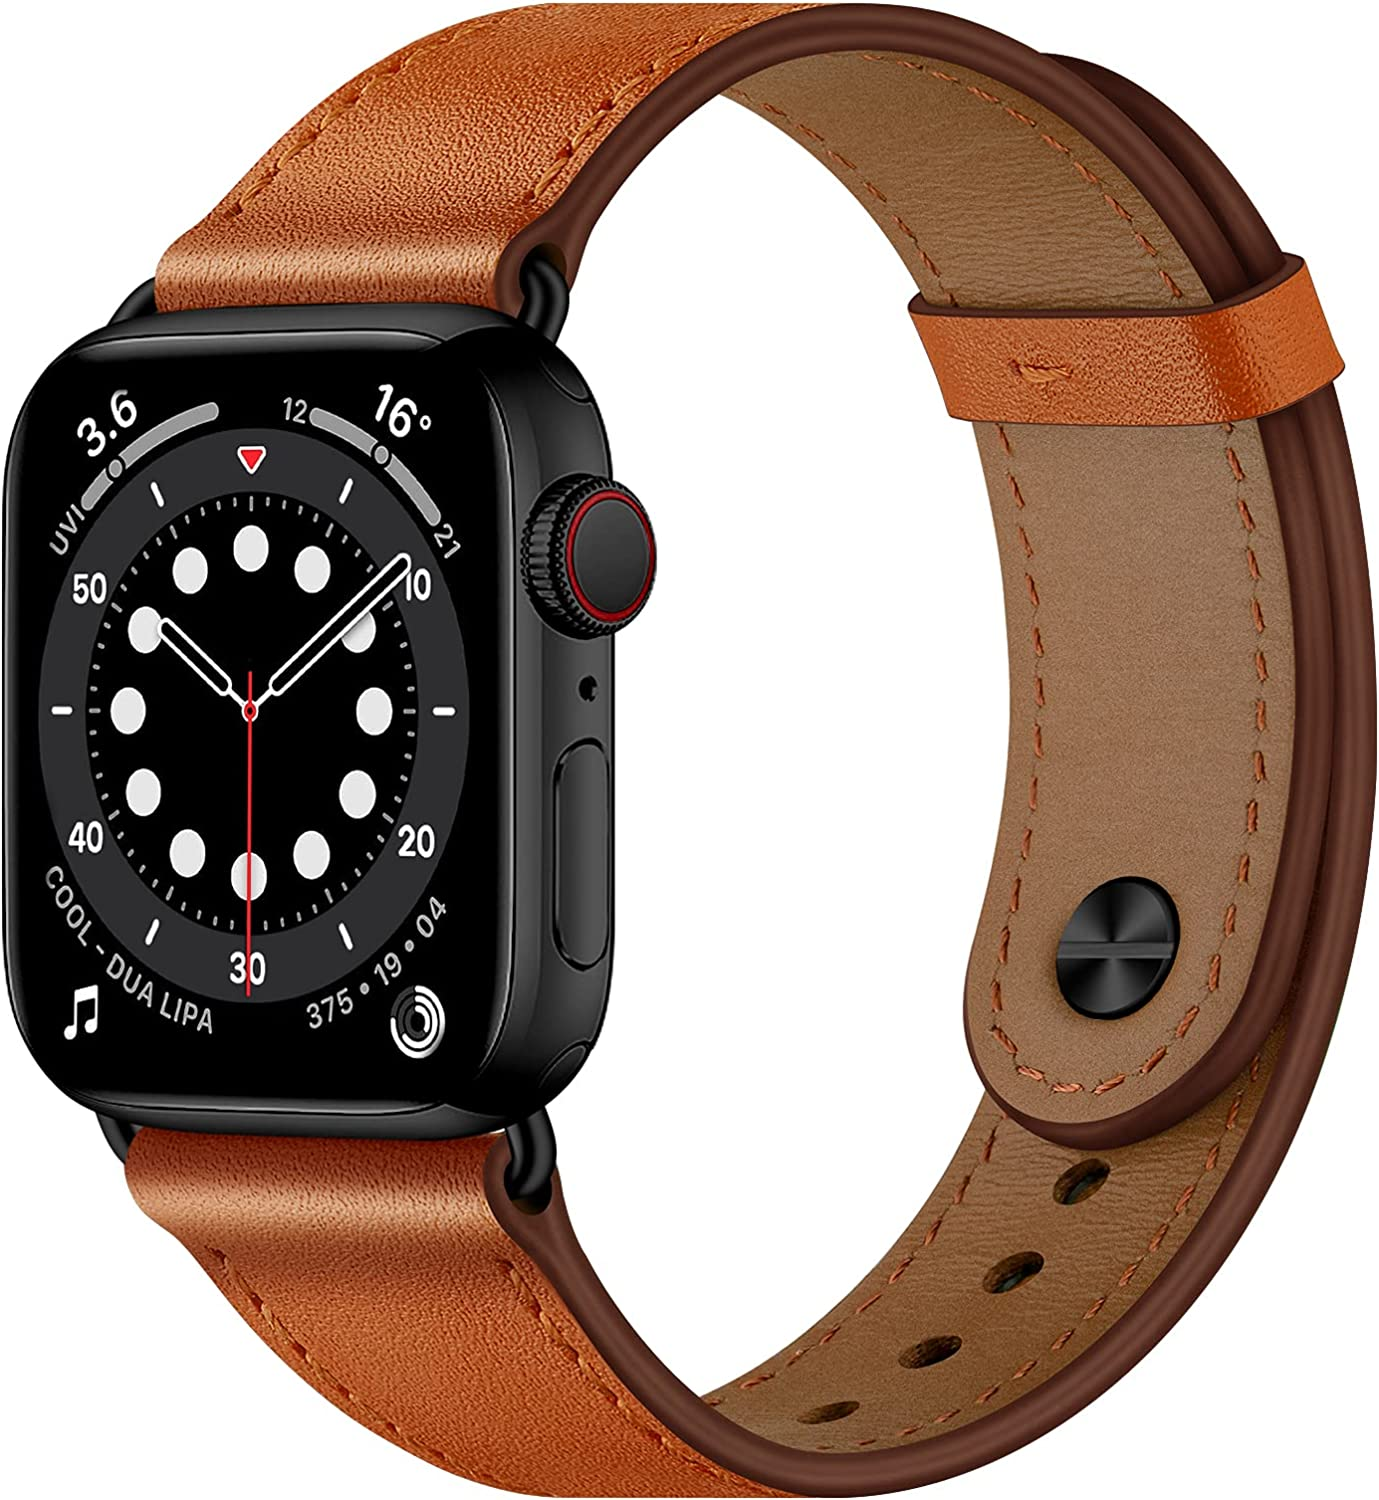 OUHENG Compatible with Apple Watch Band 44mm 42mm 40mm 38mm, Genuine Leather Bands Replacement Strap for iWatch SE Series 6 5 4 3 2 1 (Brown/Black,44mm 42mm)